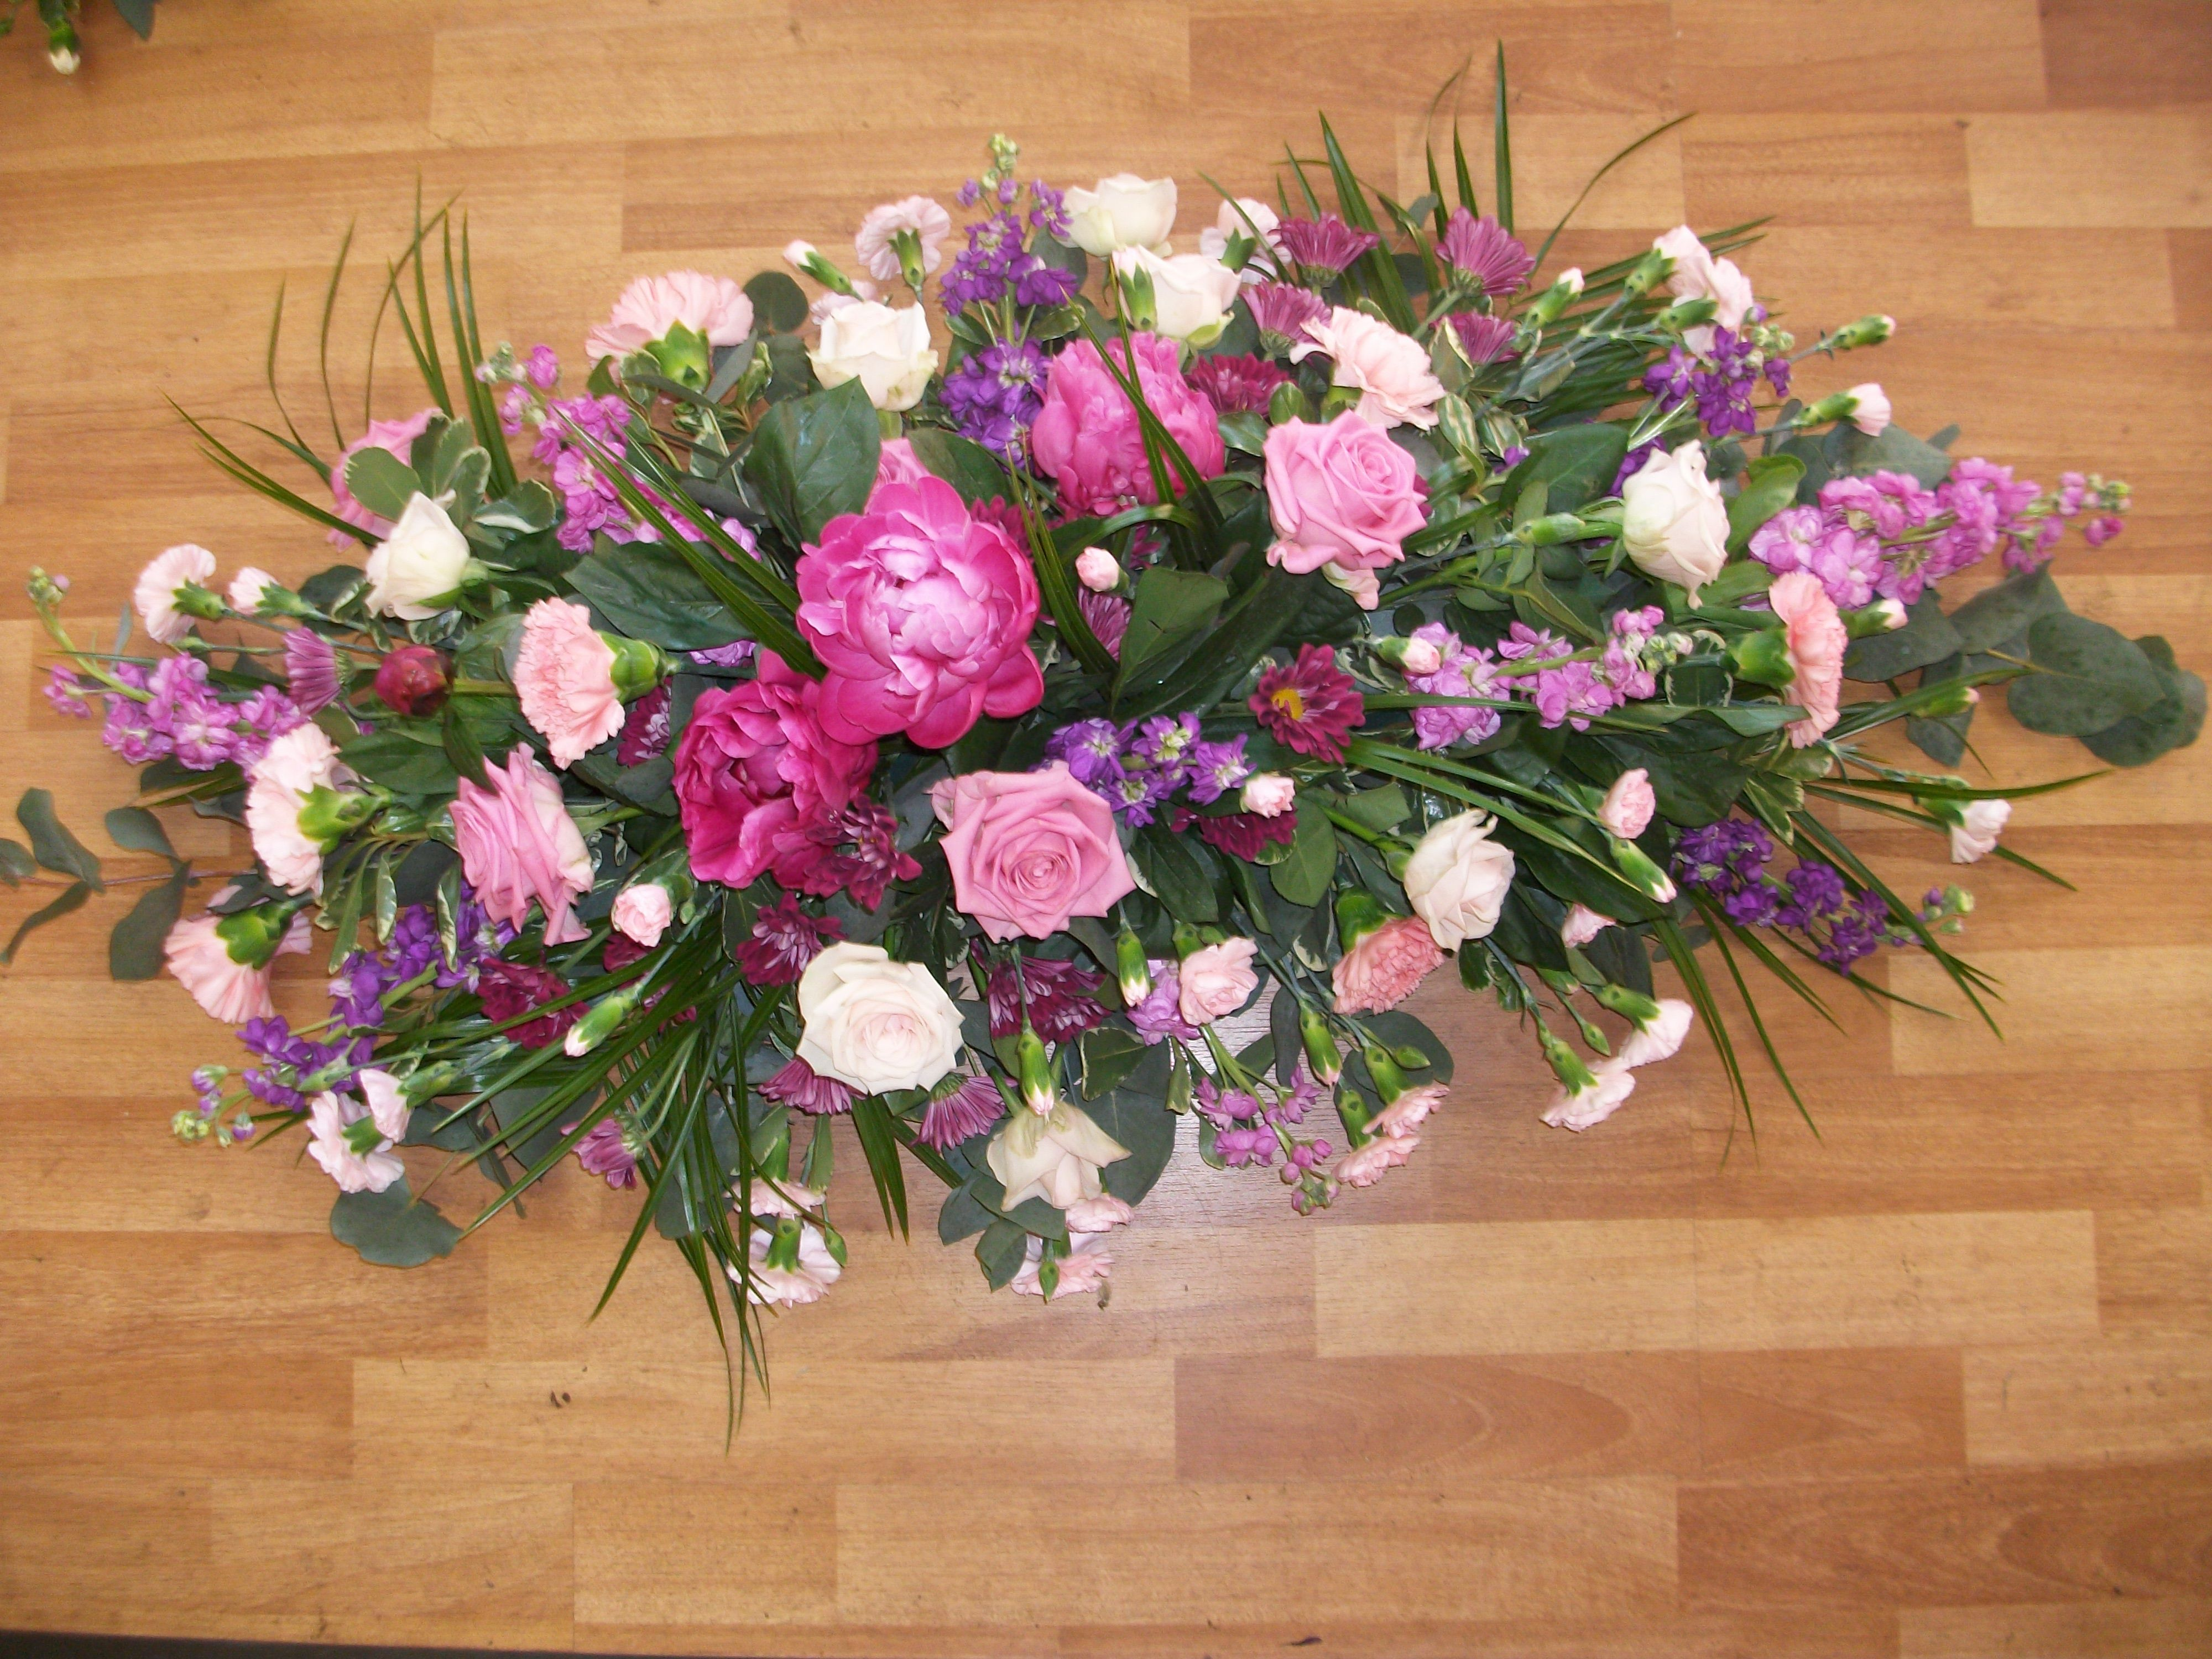 Summer casket spray created by heather county flowers for the summer casket spray created by heather county flowers funeral izmirmasajfo